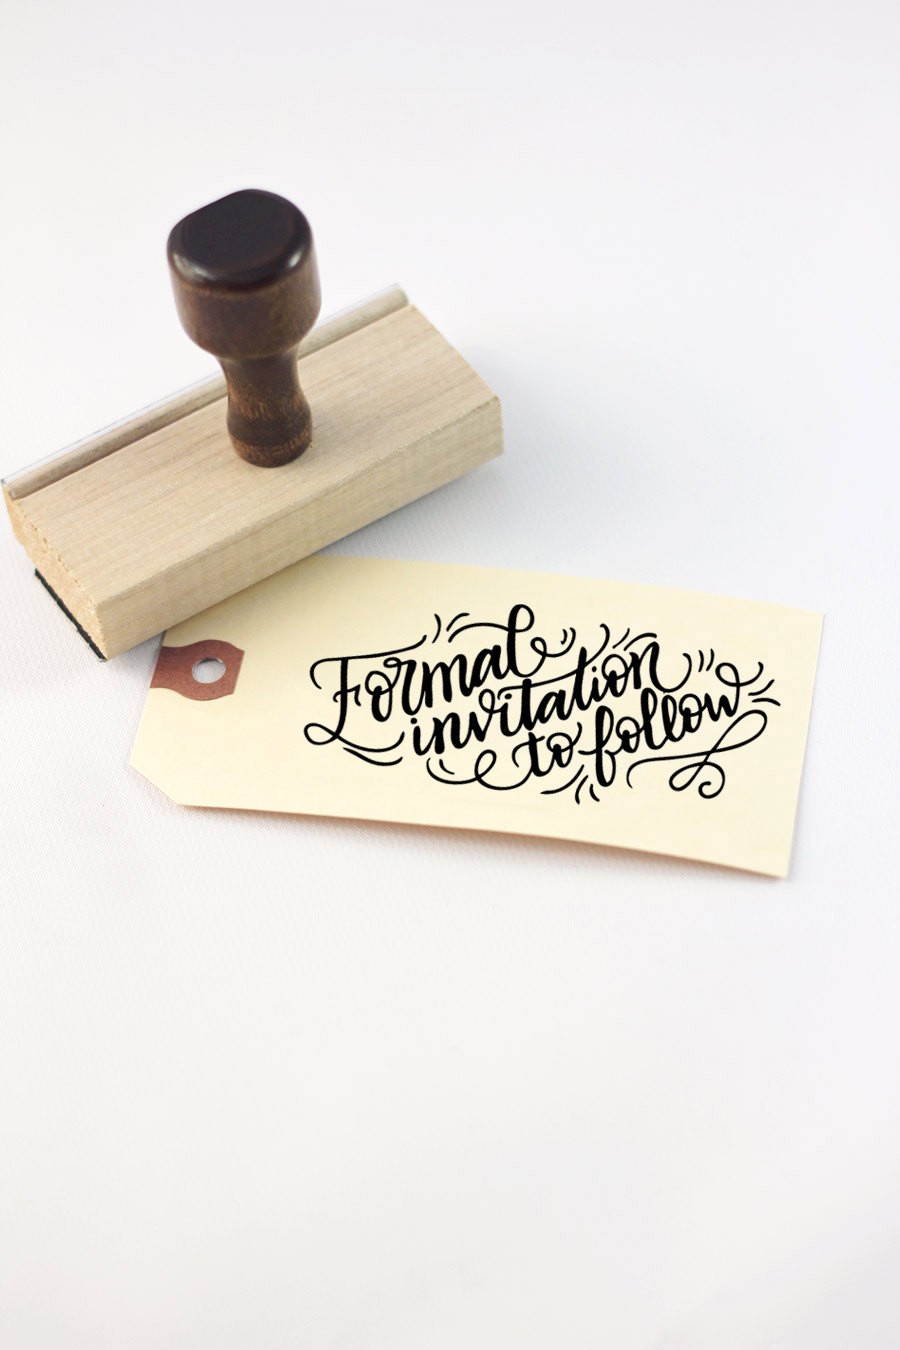 Formal invitation to follow save the date stamp DIY wedding from